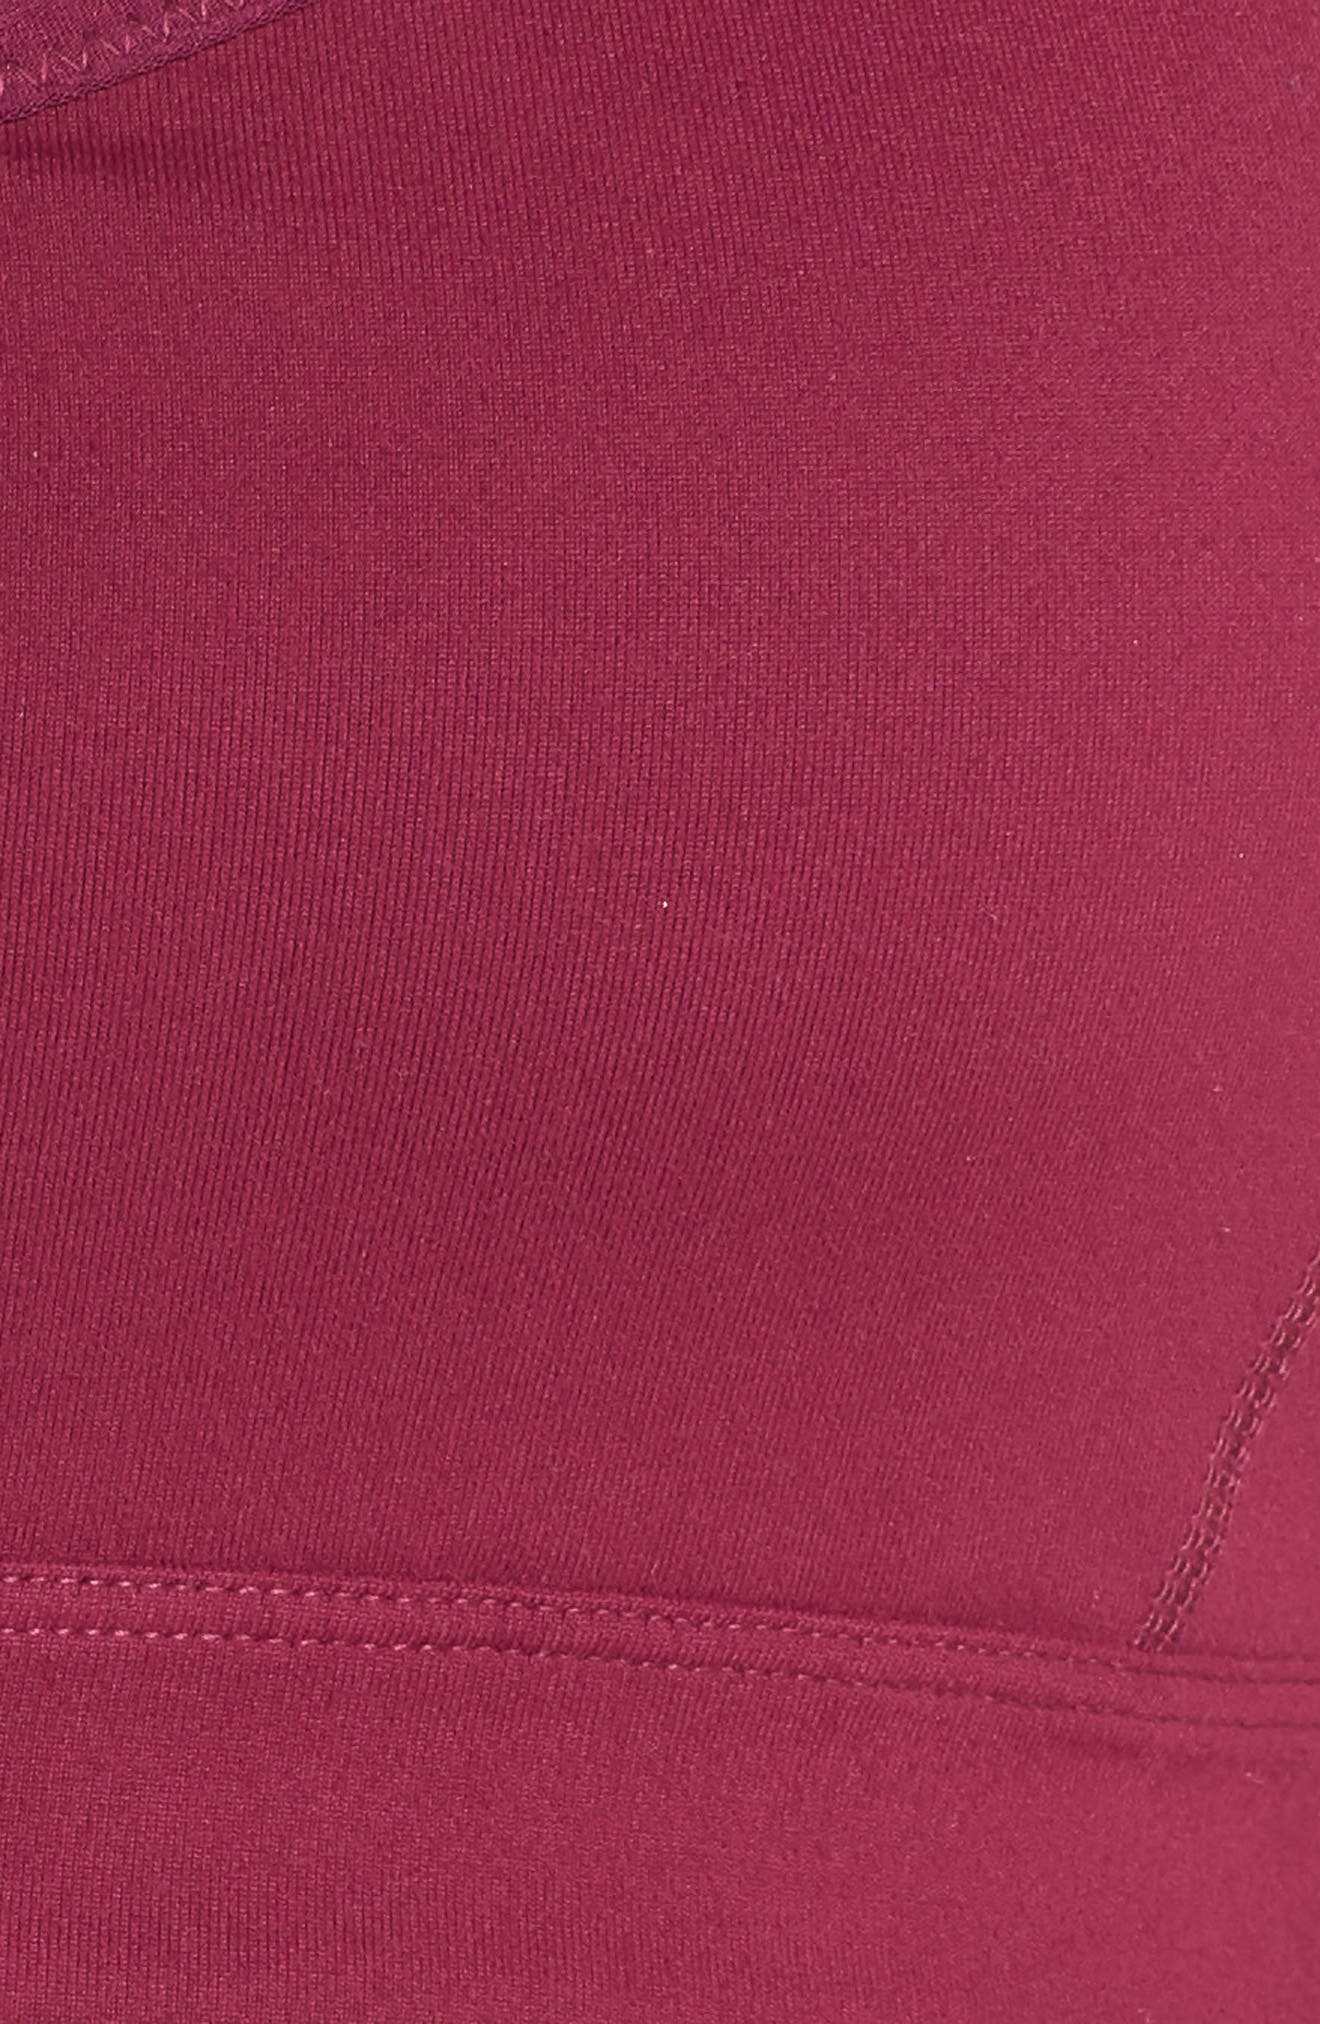 Vinyasa Sports Bra,                             Alternate thumbnail 6, color,                             Purple Magenta